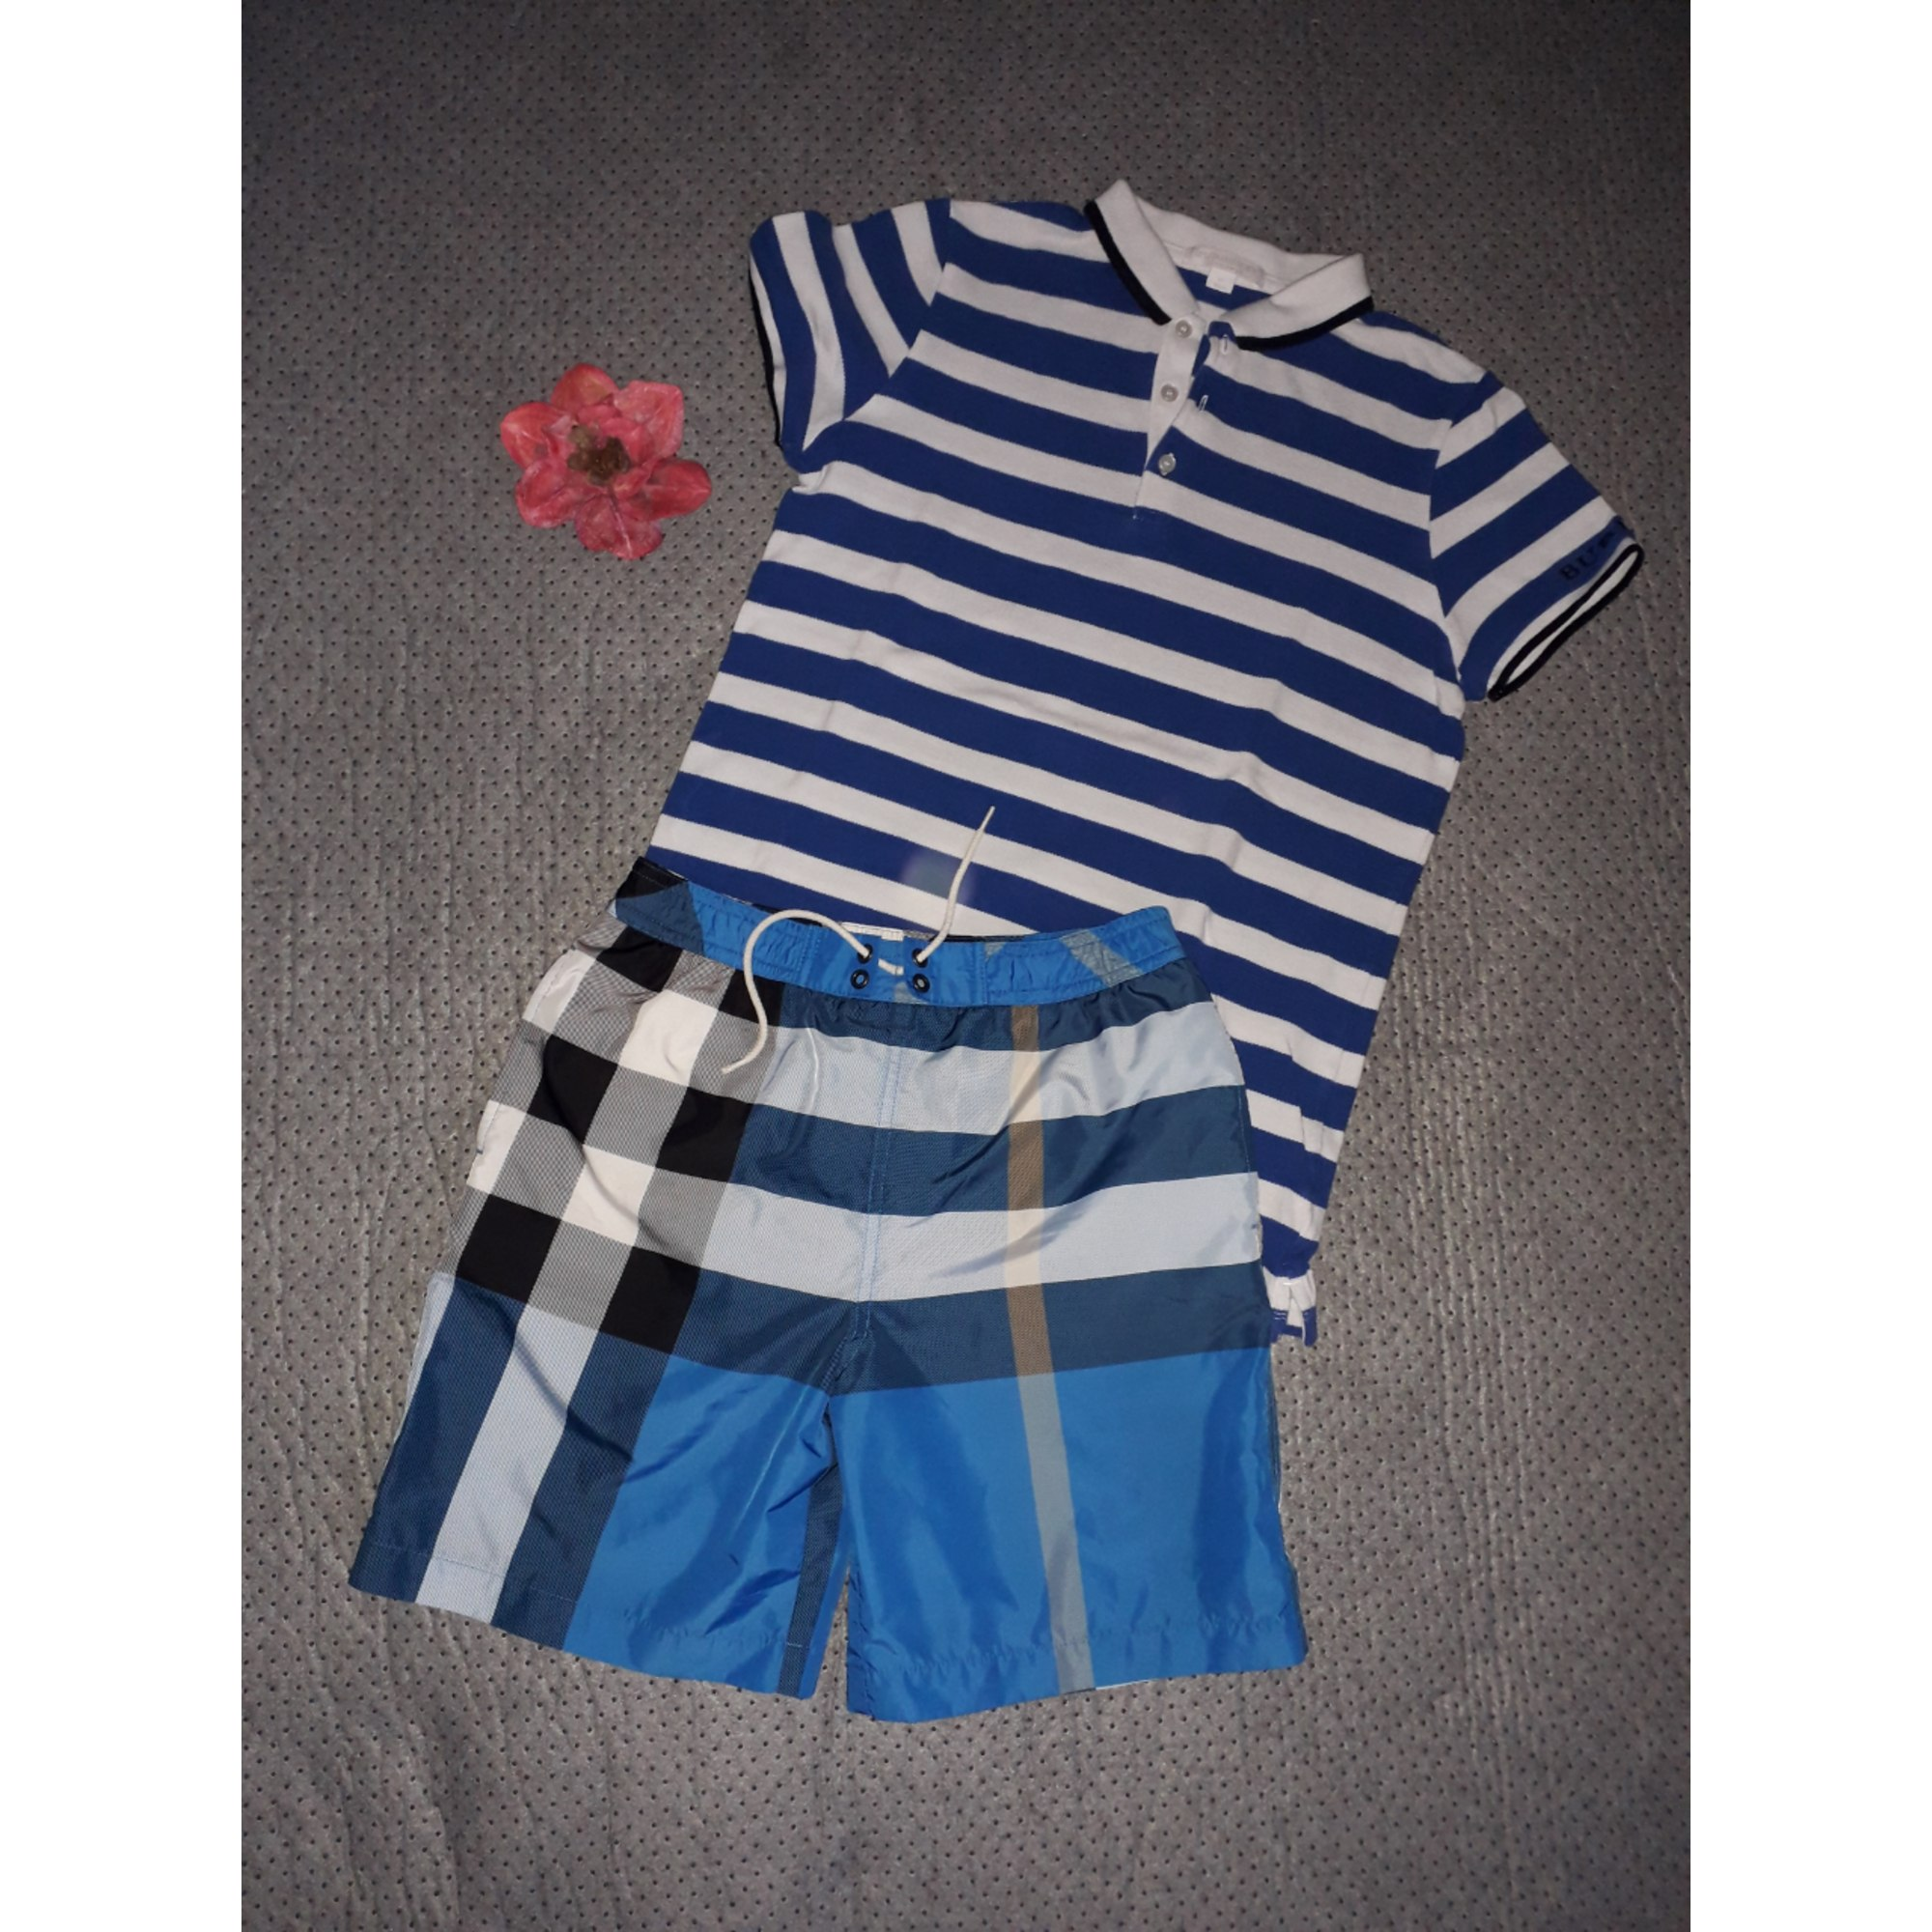 Shorts Set, Outfit BURBERRY Blue, navy, turquoise